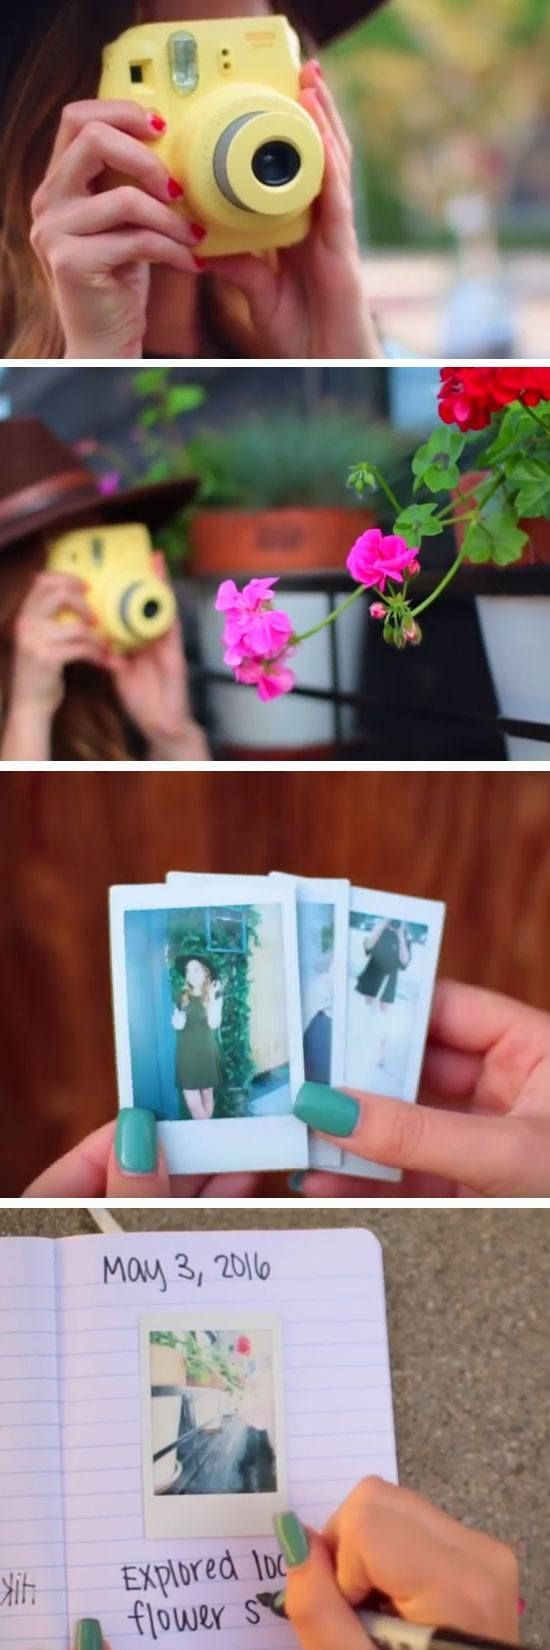 Make a Picture a Day Scrapbook | Summer Fun Ideas for Teens Bucket Lists you will want to share on Facebook!